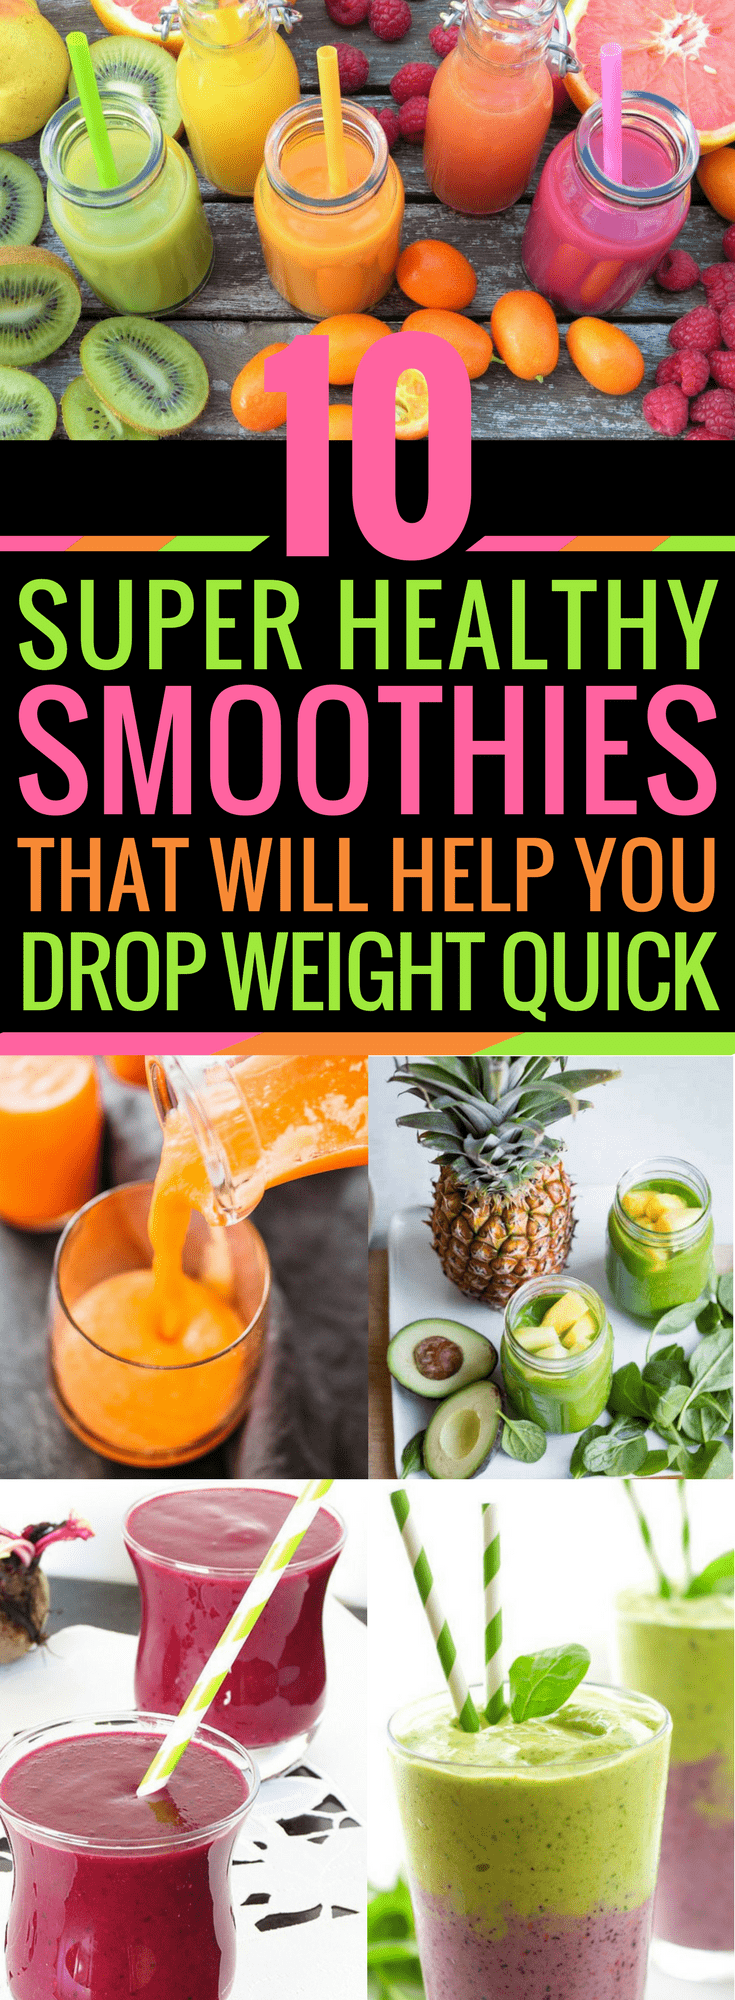 This list is AMAZING! I love the variety to help you trim fat and get healthy. These are seriously THE BEST! #Fitness #Weightloss #Smoothies